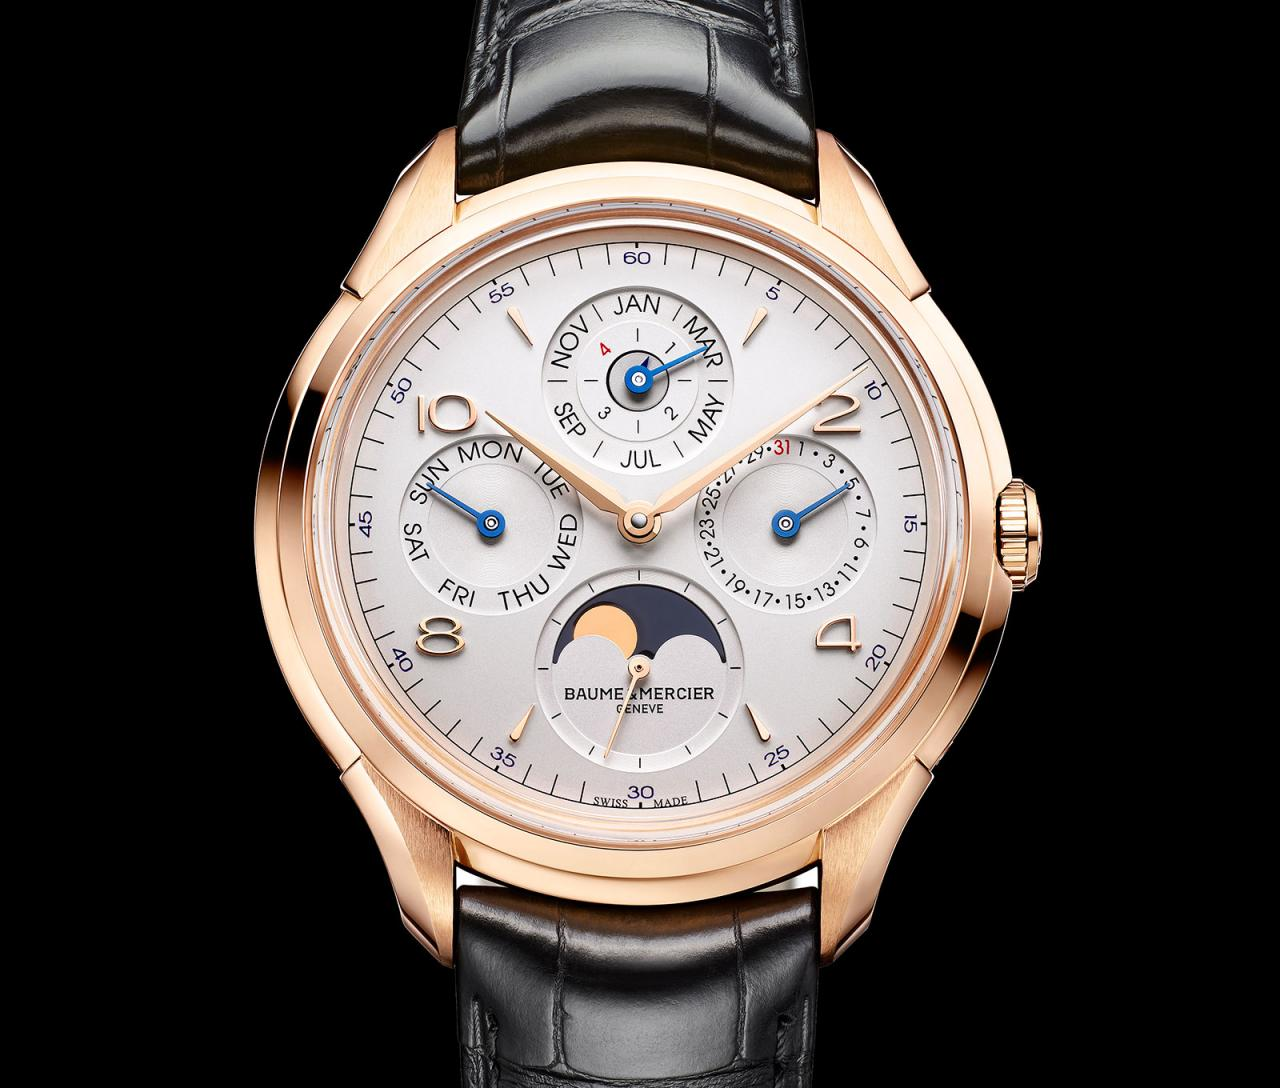 Replica At Lowest Price Baume & Mercier Introduces Red Gold Perpetual Calendar Powered by Vaucher Movement For US$21,000